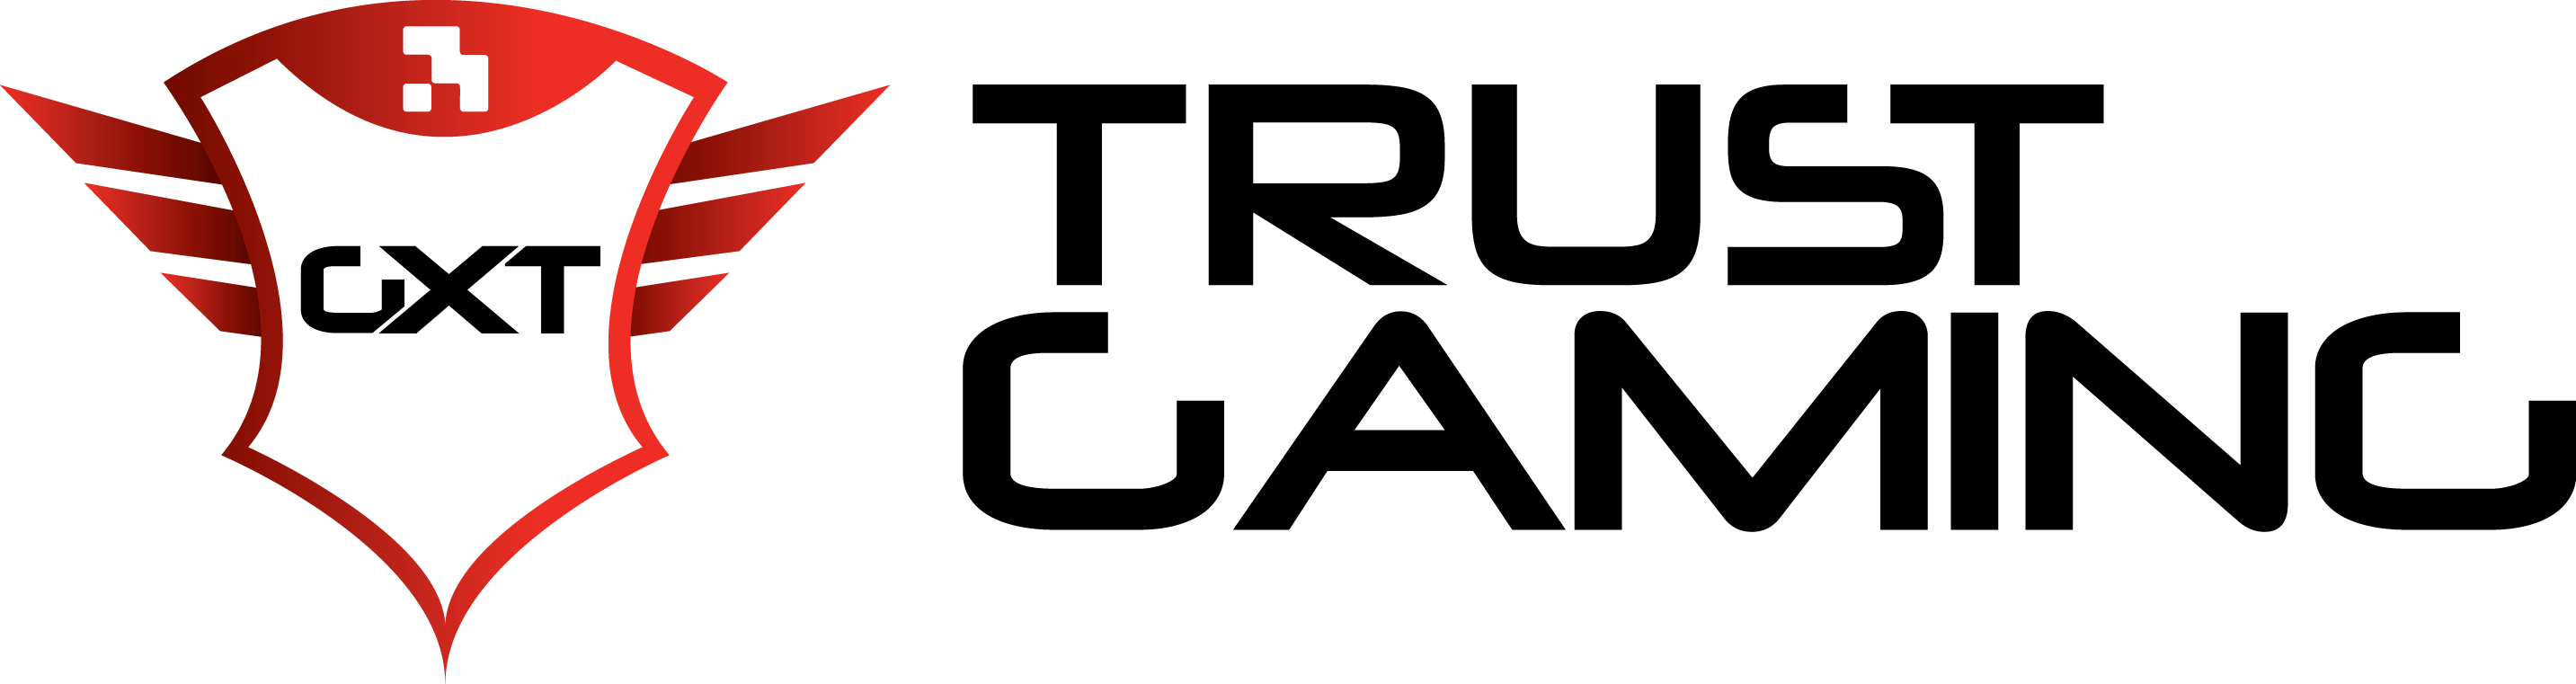 trust gaming, trust, Perifericos trust, Perifericos gamers, mouse gamer, teclado gamers, headset gamer, diademas gamers, Pc Gamer colombia, PC gamer, PC diseño, pc arquitectura